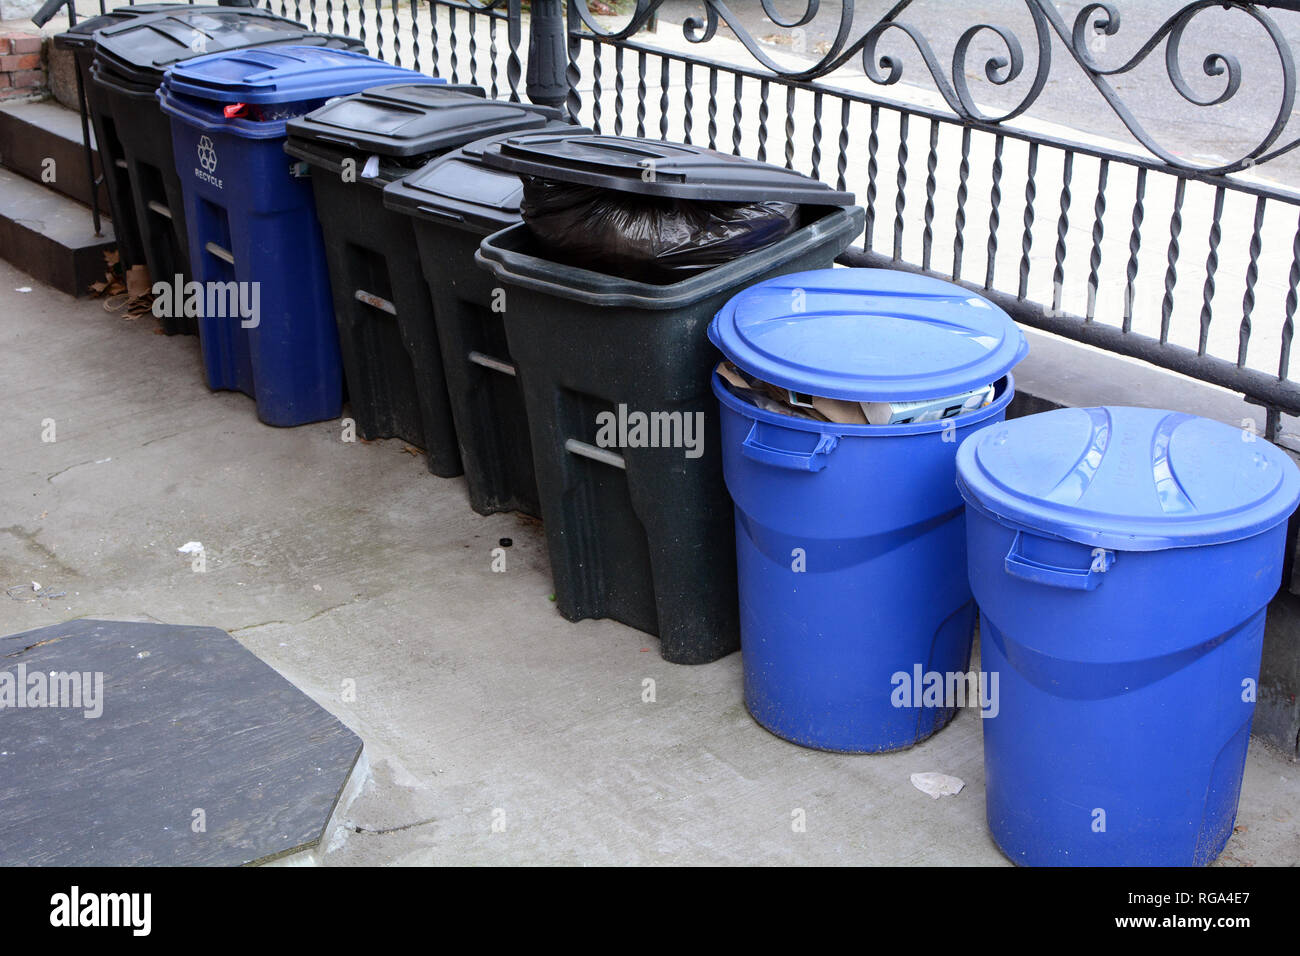 Trash and Recycling Bins In Front of Building at Sidewalk - Stock Image